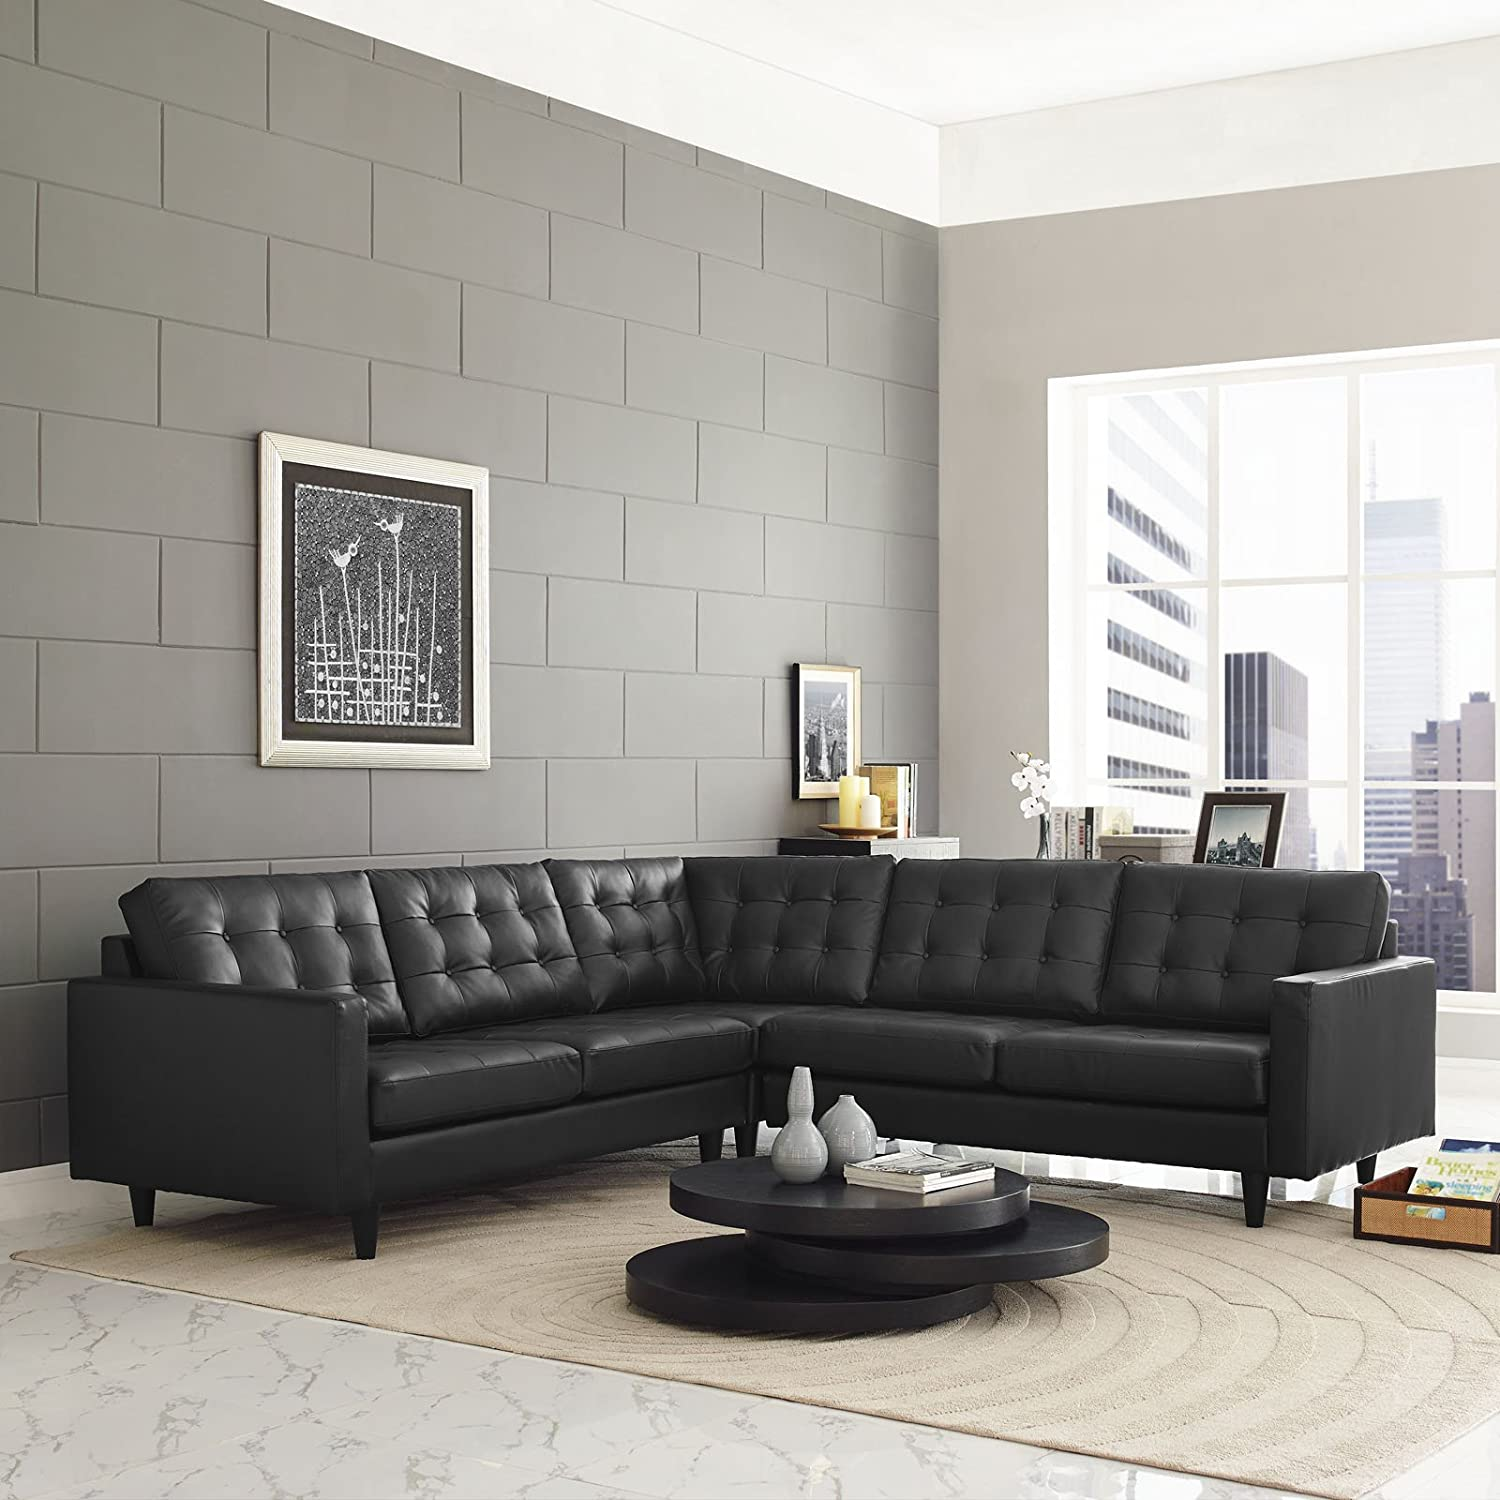 Inspirational Black Sectional sofa Inspirational – Tatsuyoru